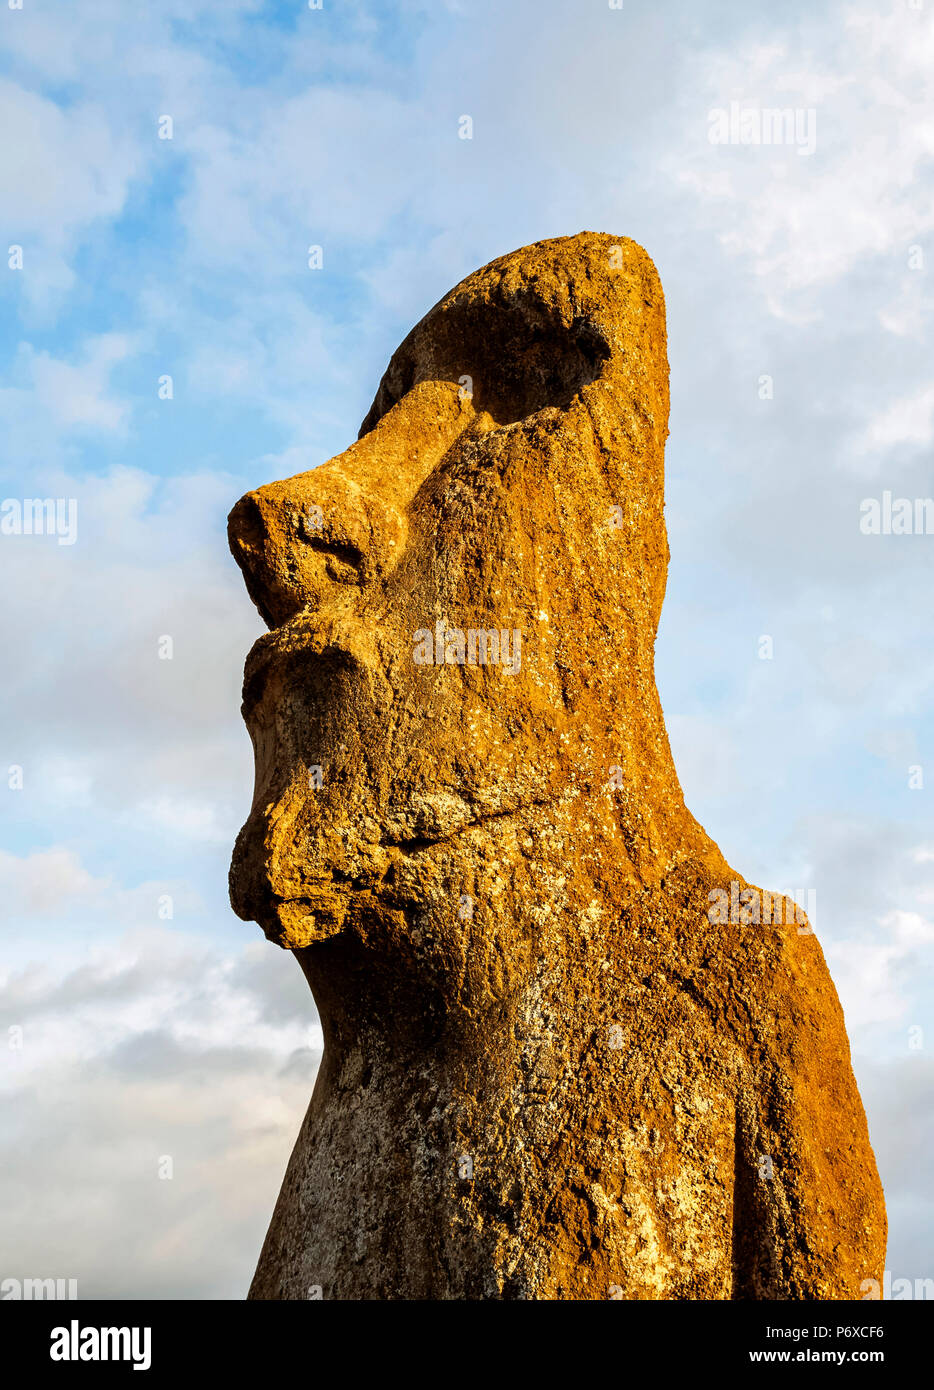 Moai in Ahu Tongariki, Rapa Nui National Park, Easter Island, Chile - Stock Image